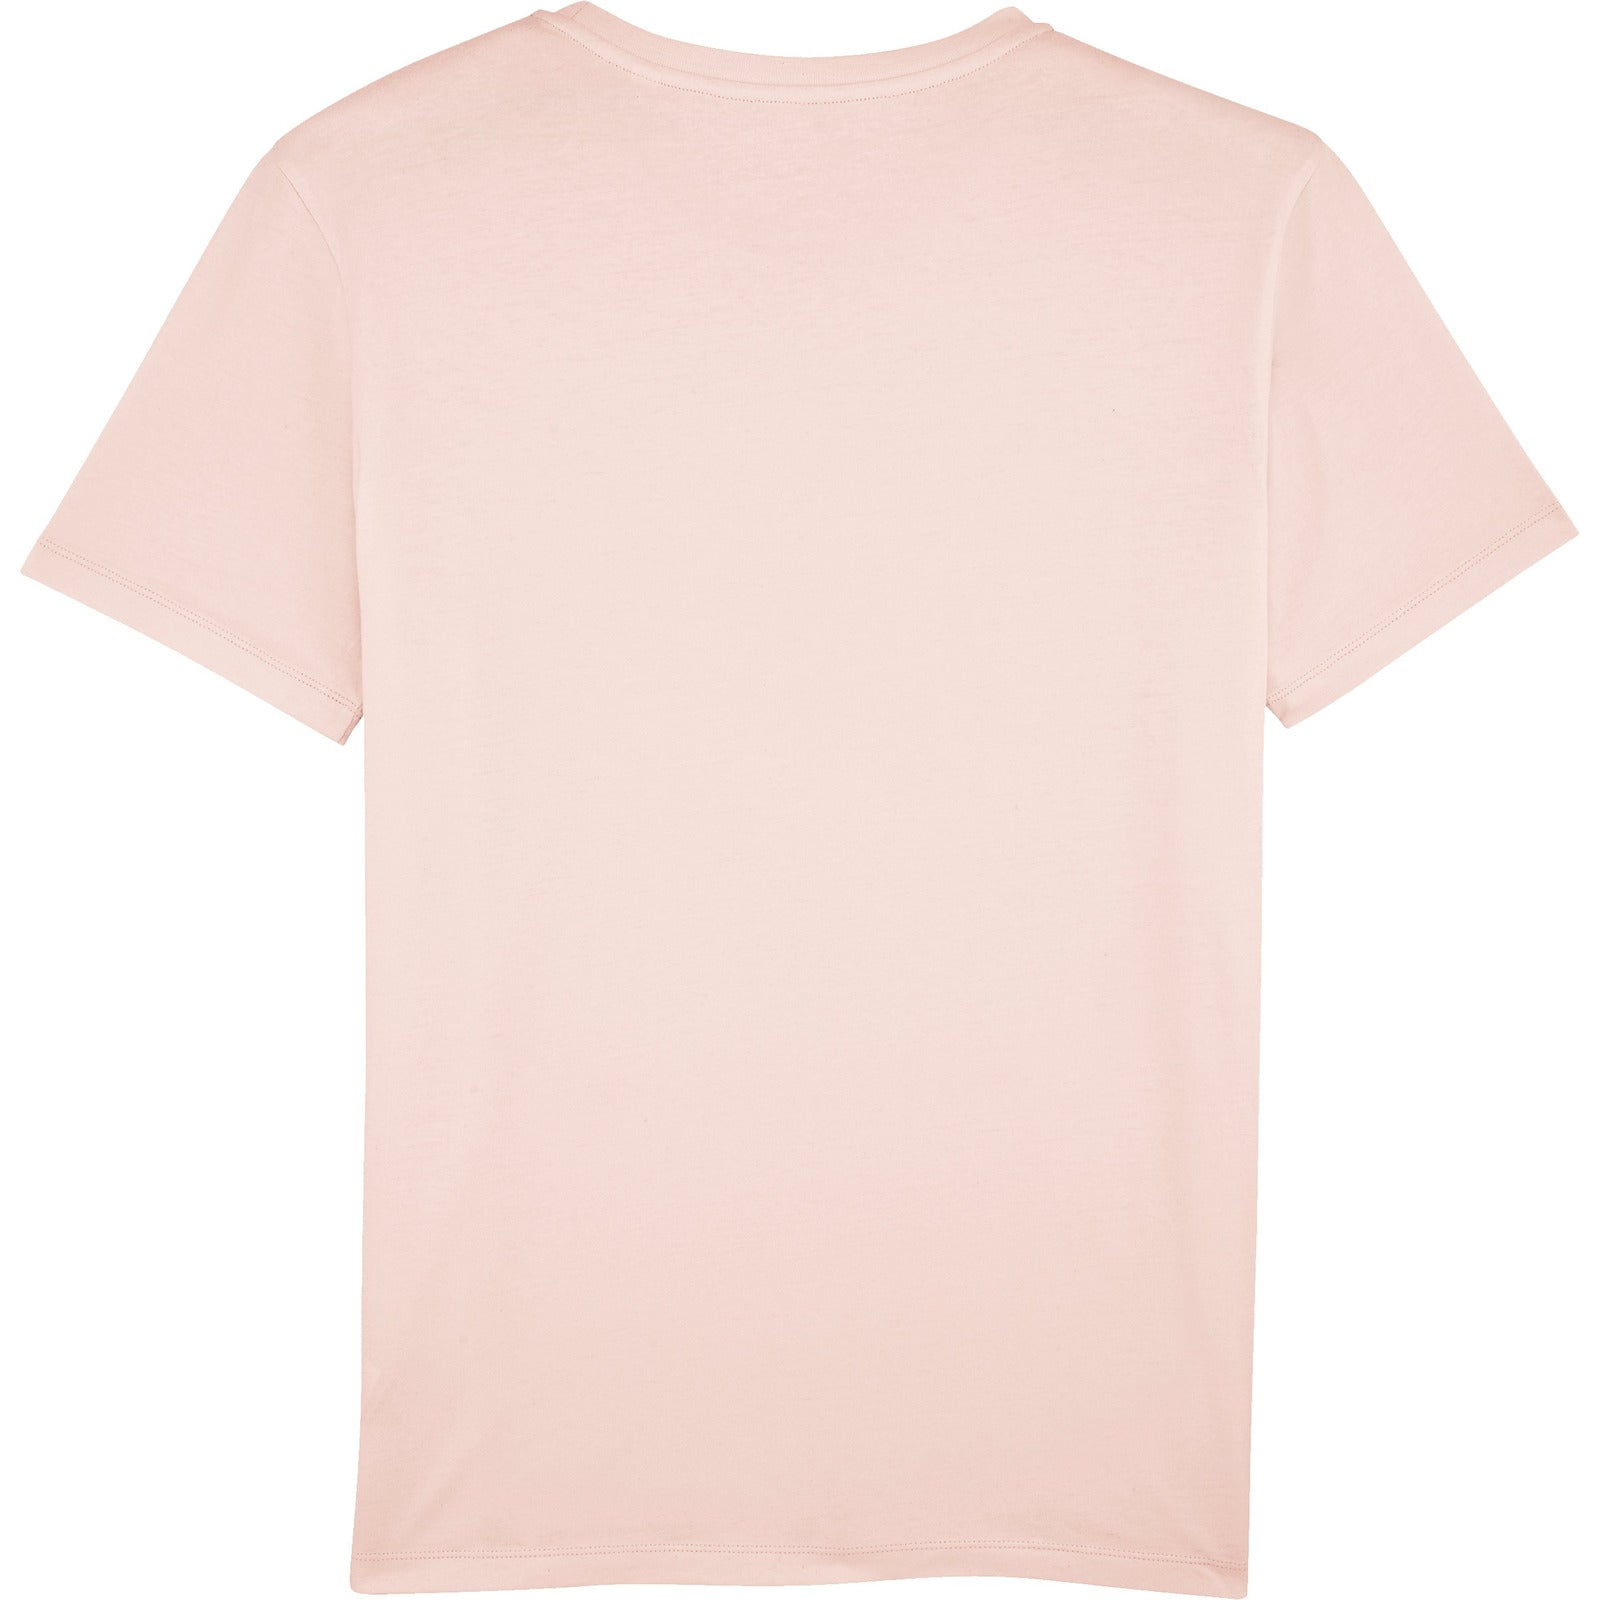 T-SHIRT REGULAR FIT [CREAM PINK]